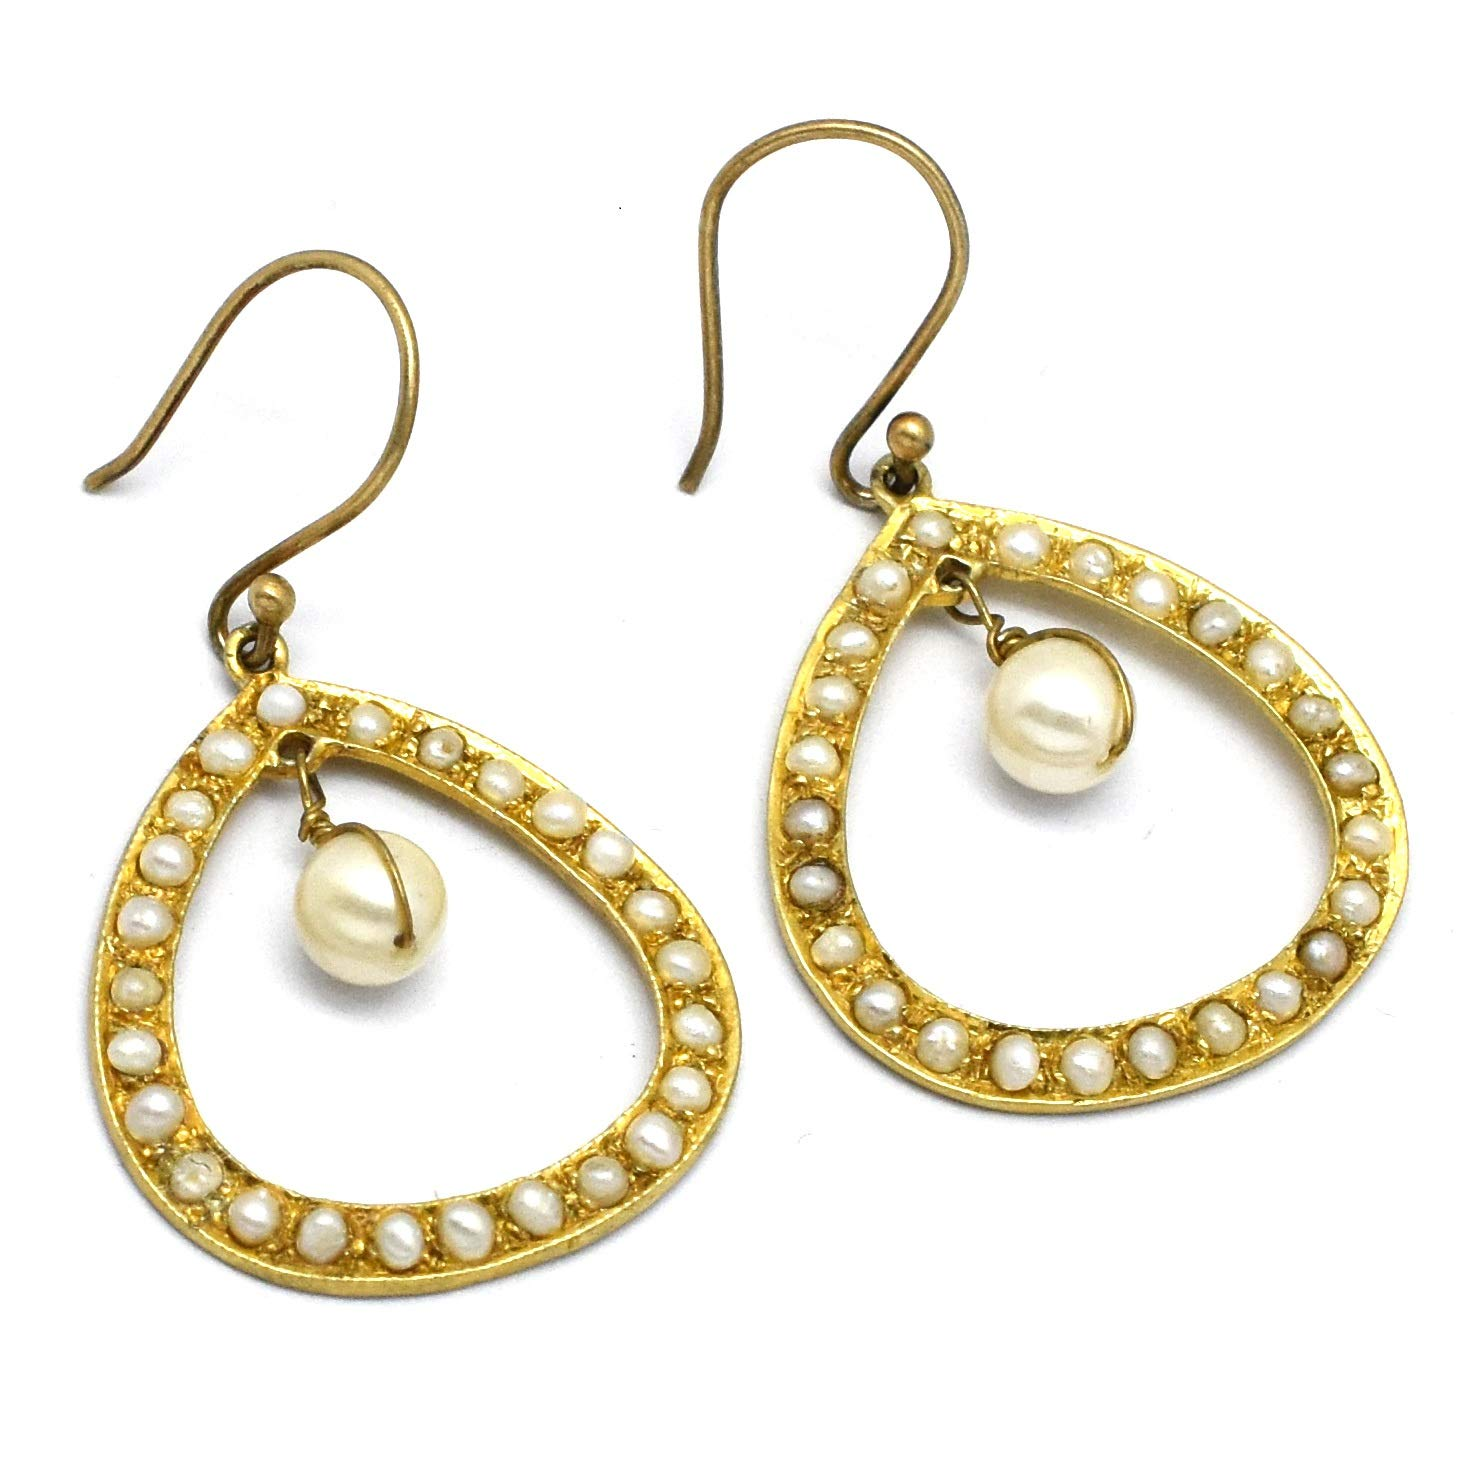 The V Collection earrings 22k yellow gold plated pearl beads dangling earrings for women and girls